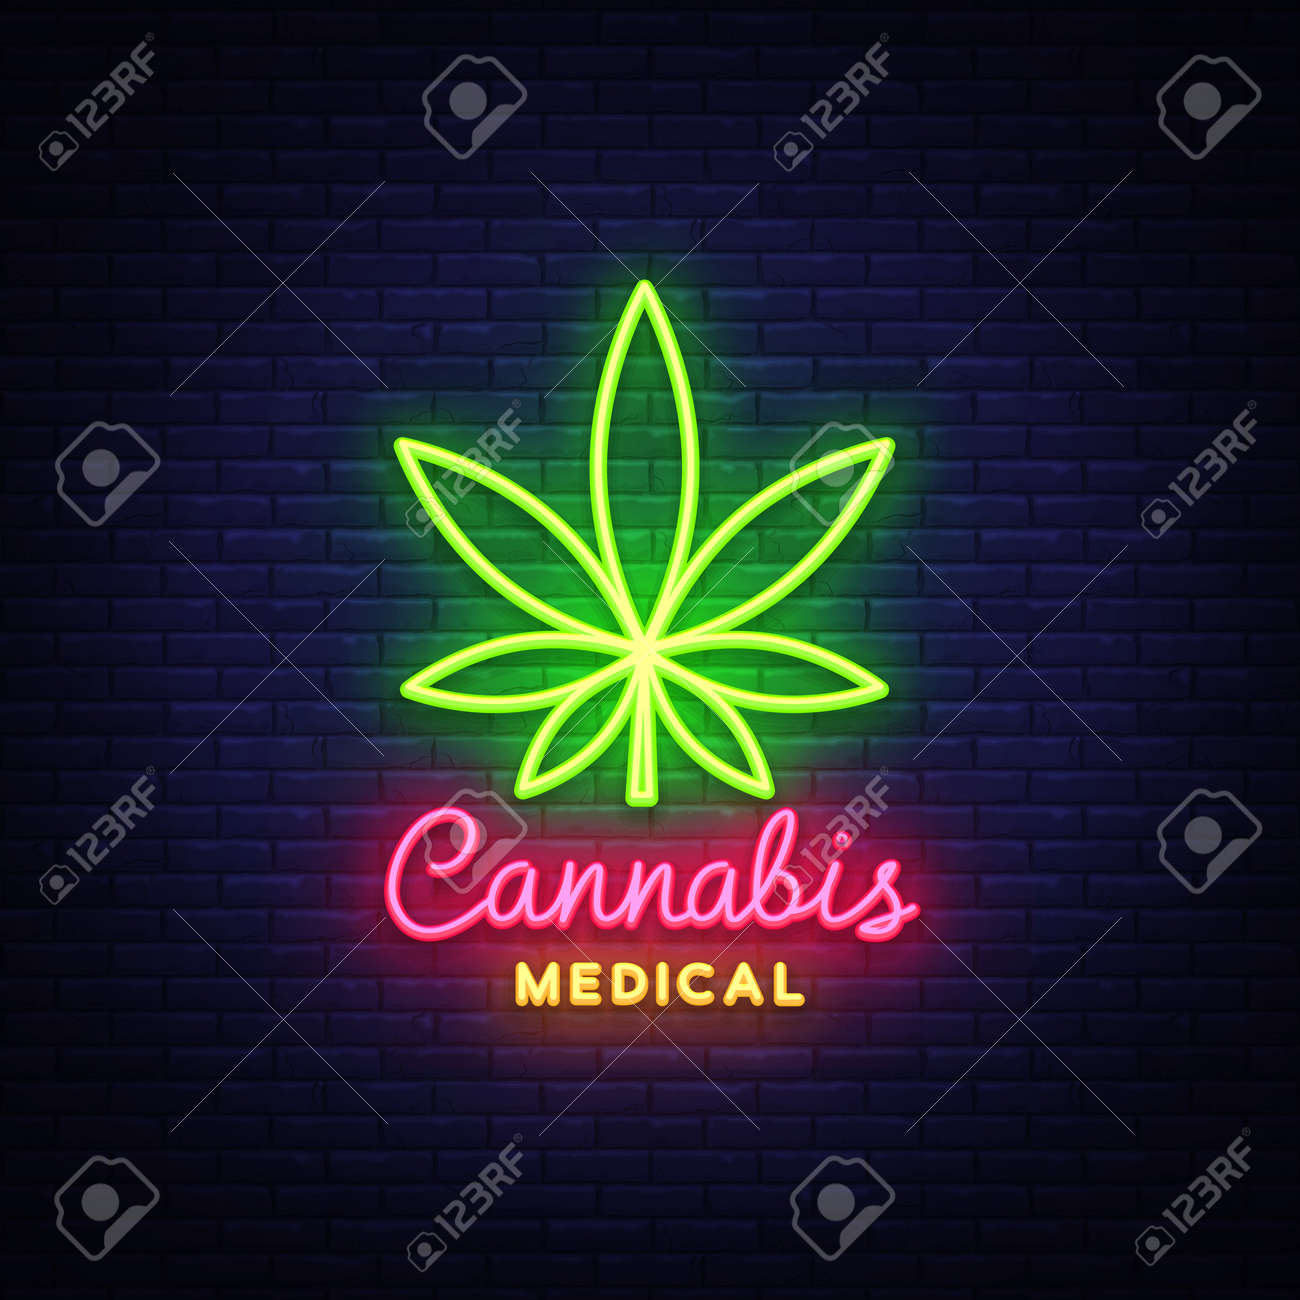 Marijuana Medical Neon Sign And Logo Graphic Template In Modern